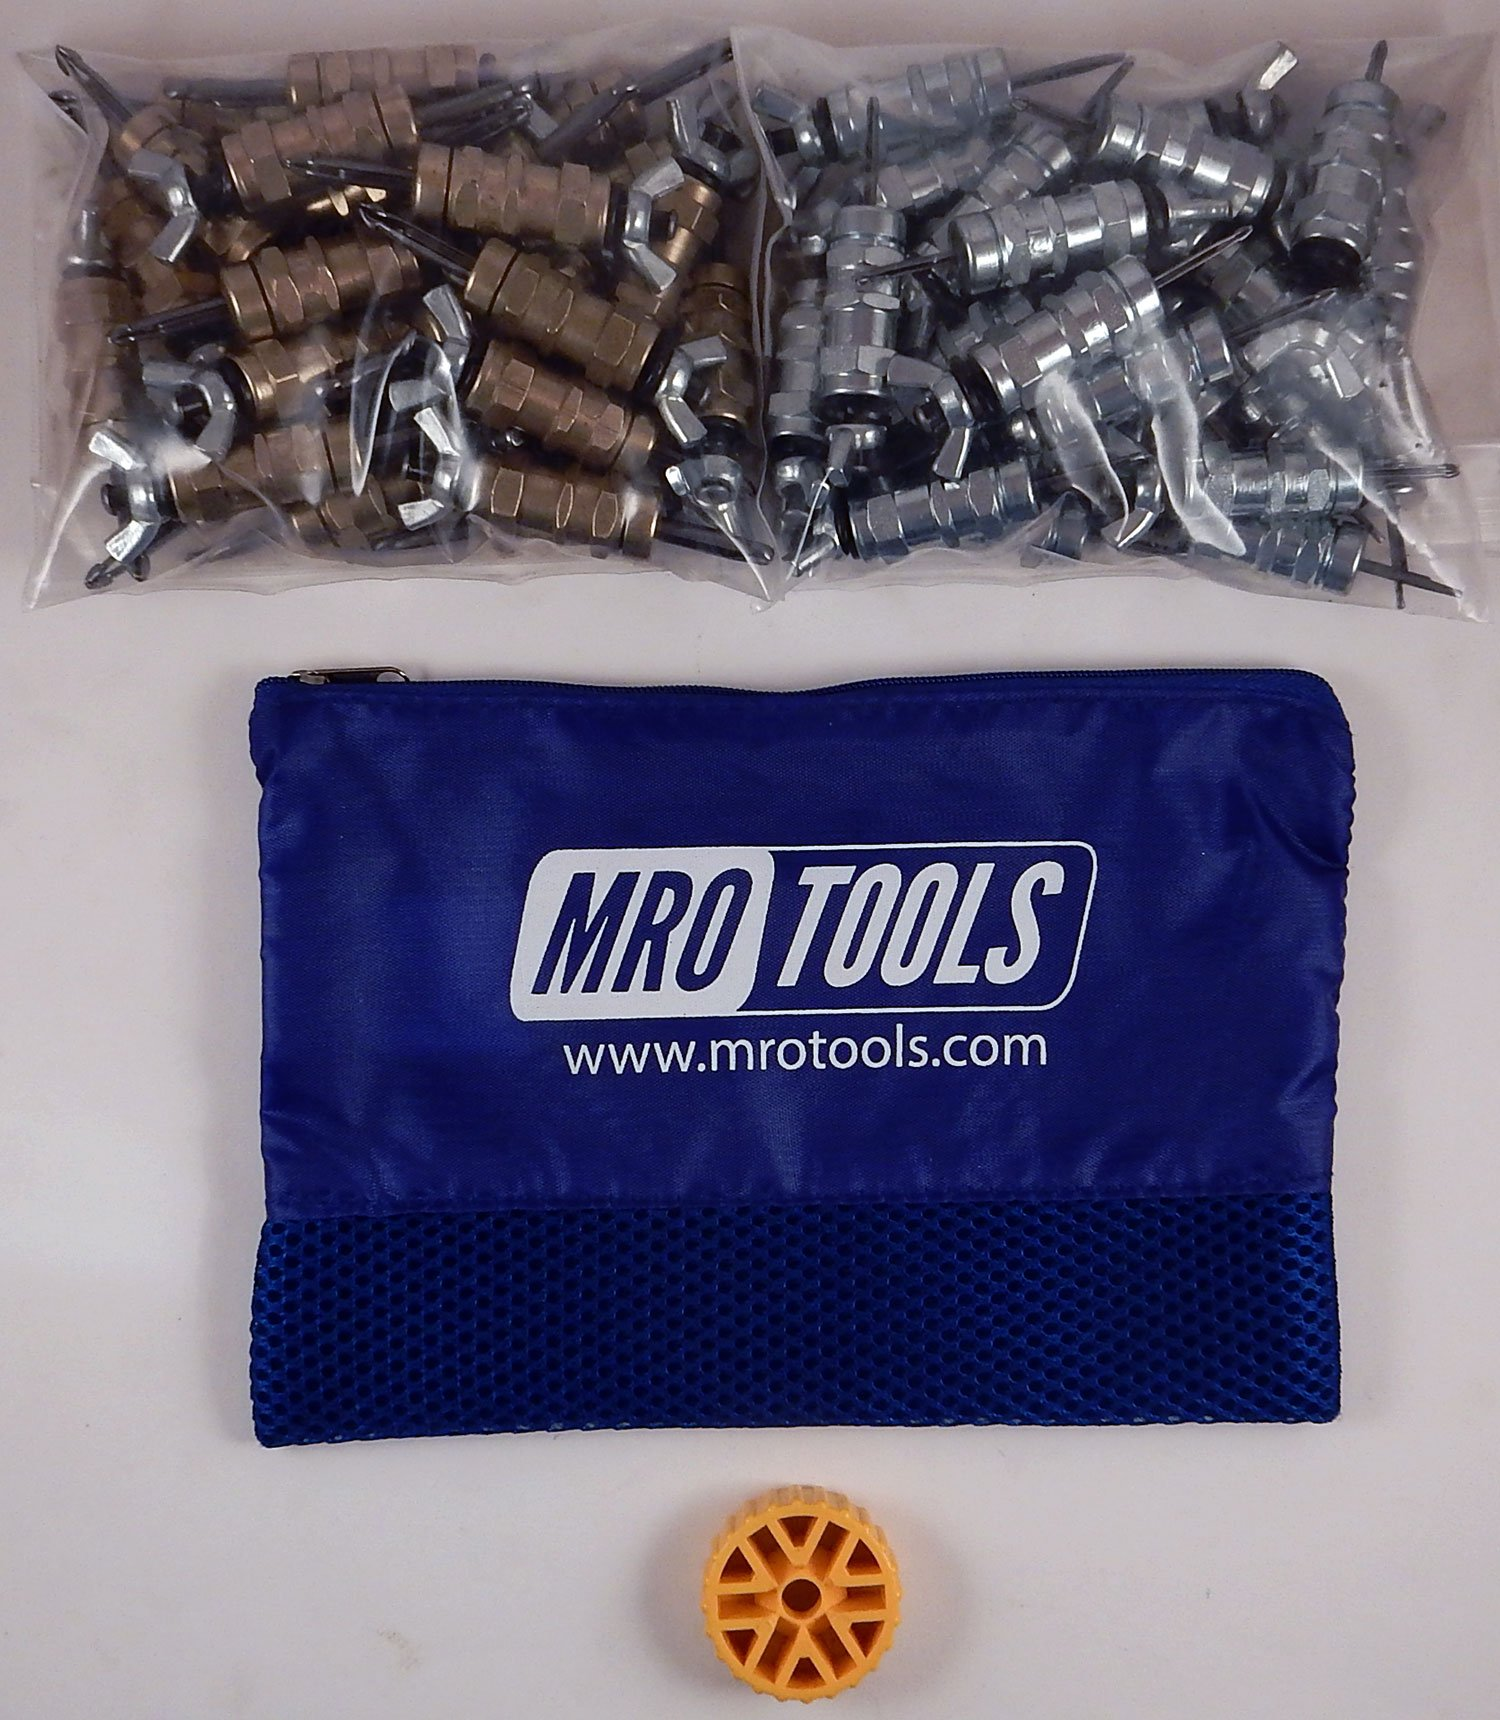 25 3/16 & 25 3/32 Standard Wing-Nut Cleco Fastener w HBHT Tool & Bag (KWN4S50-5)